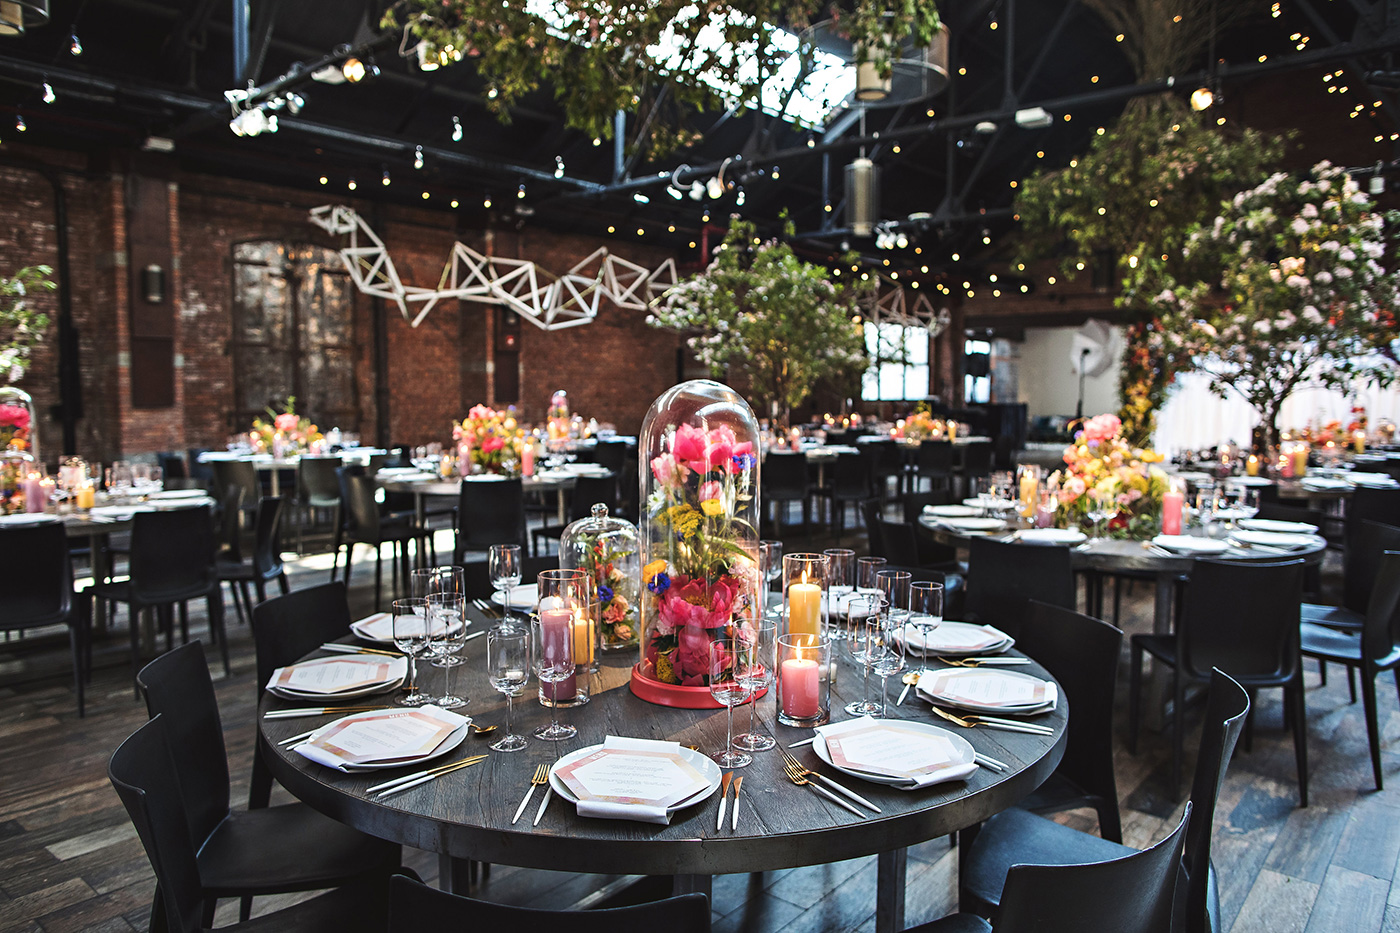 Round tables vs Rectangle tables for a wedding - Michelle Edgemont Design